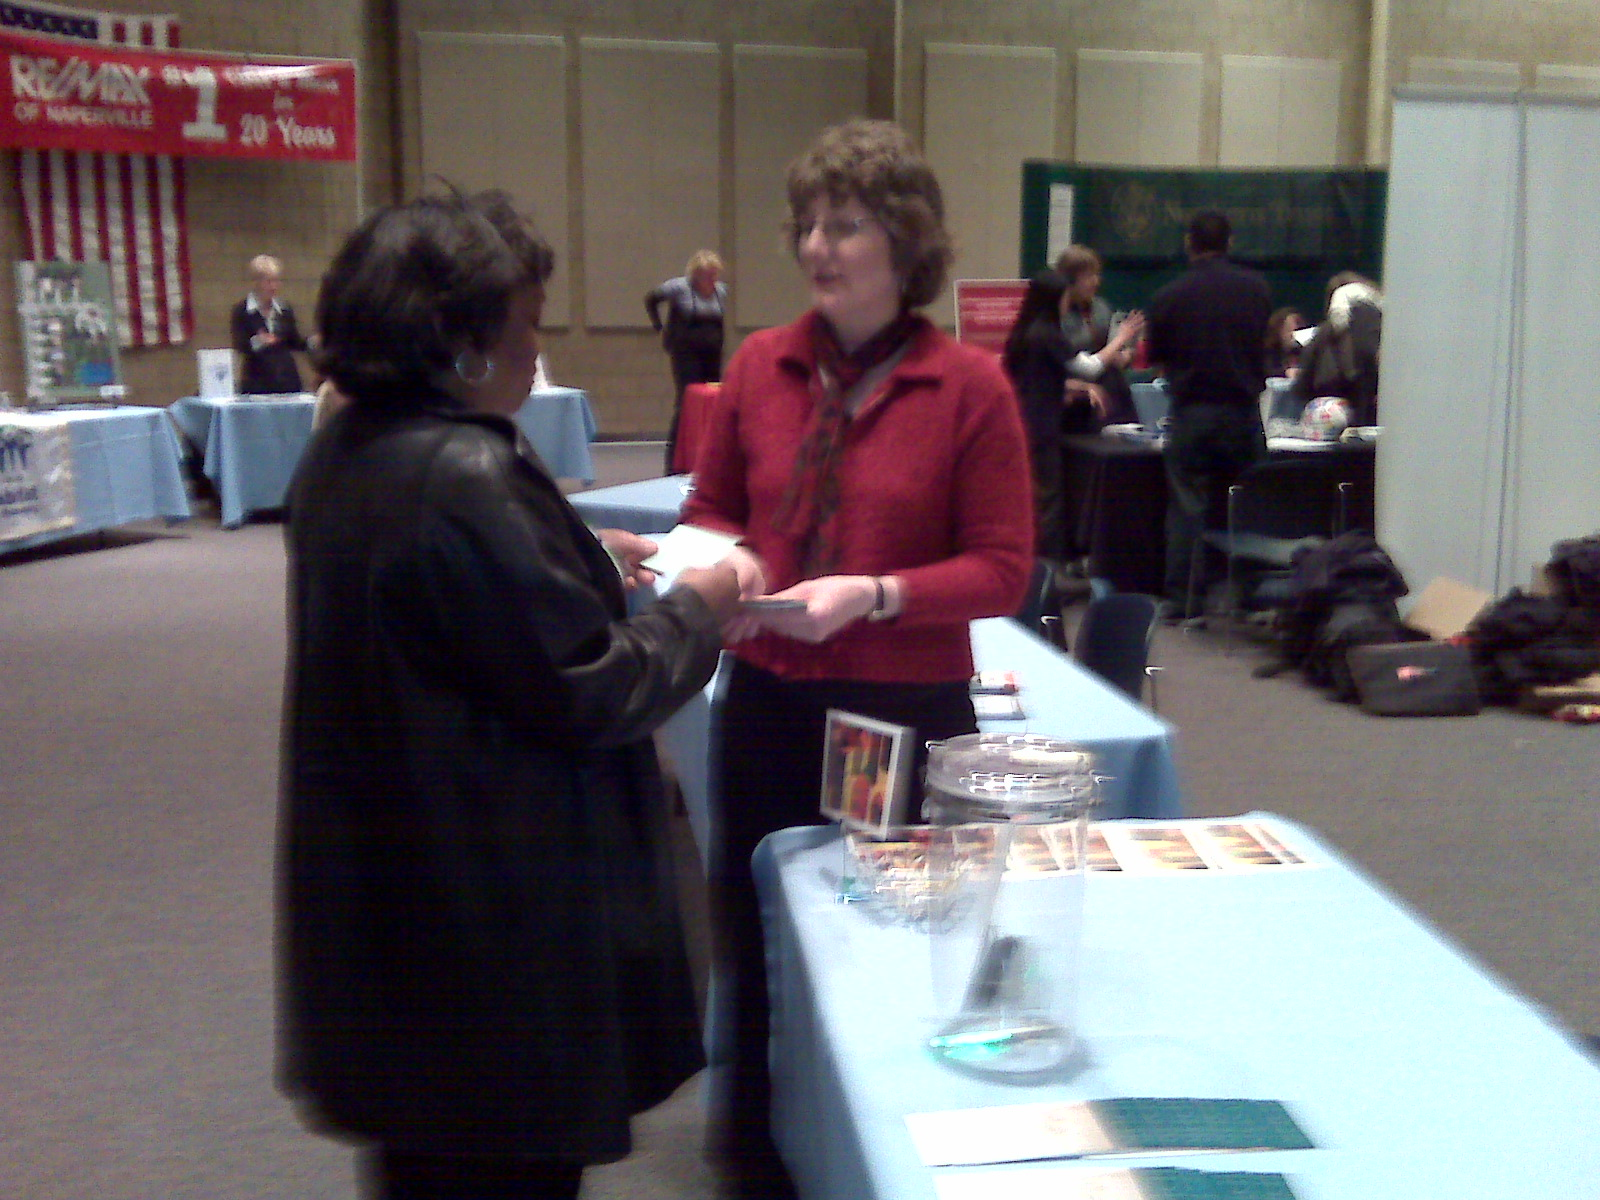 attendee (left) and Marion Honel (right)